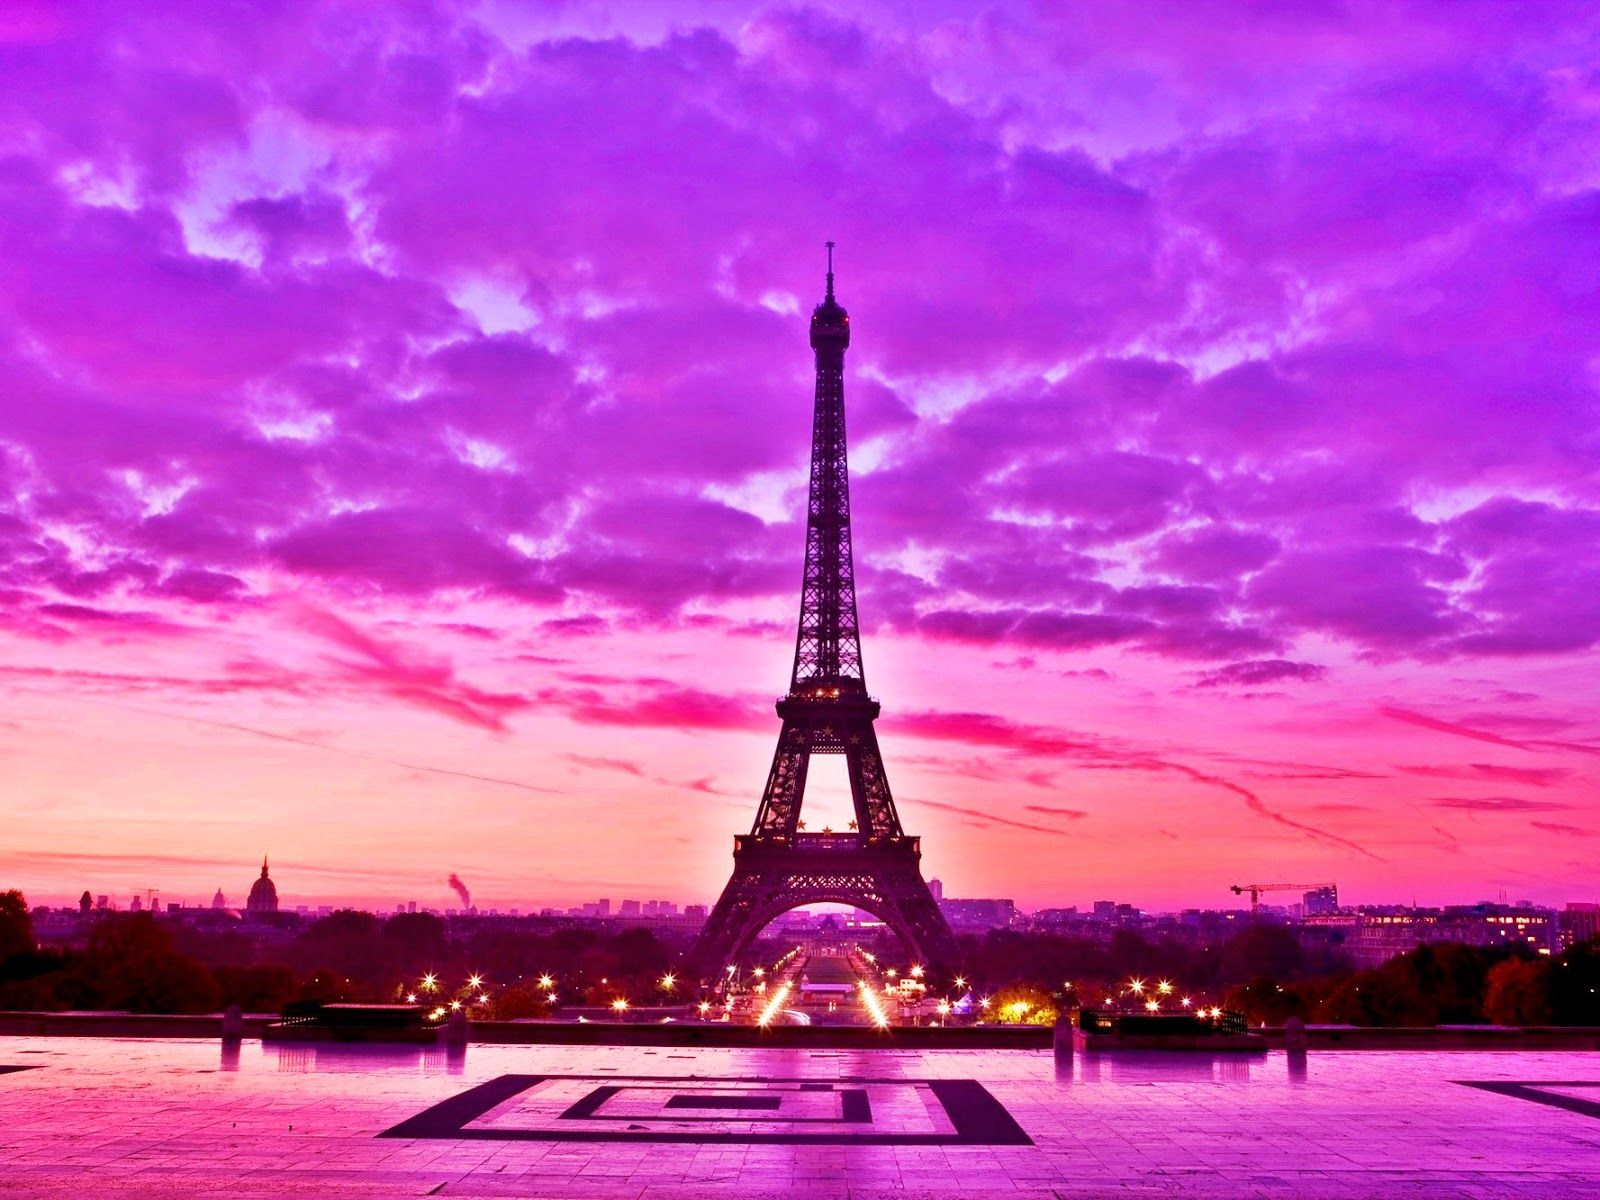 Eiffel Tower Pink Wallpaper - Eiffel Tower Pink Pictures | Eiffel ...